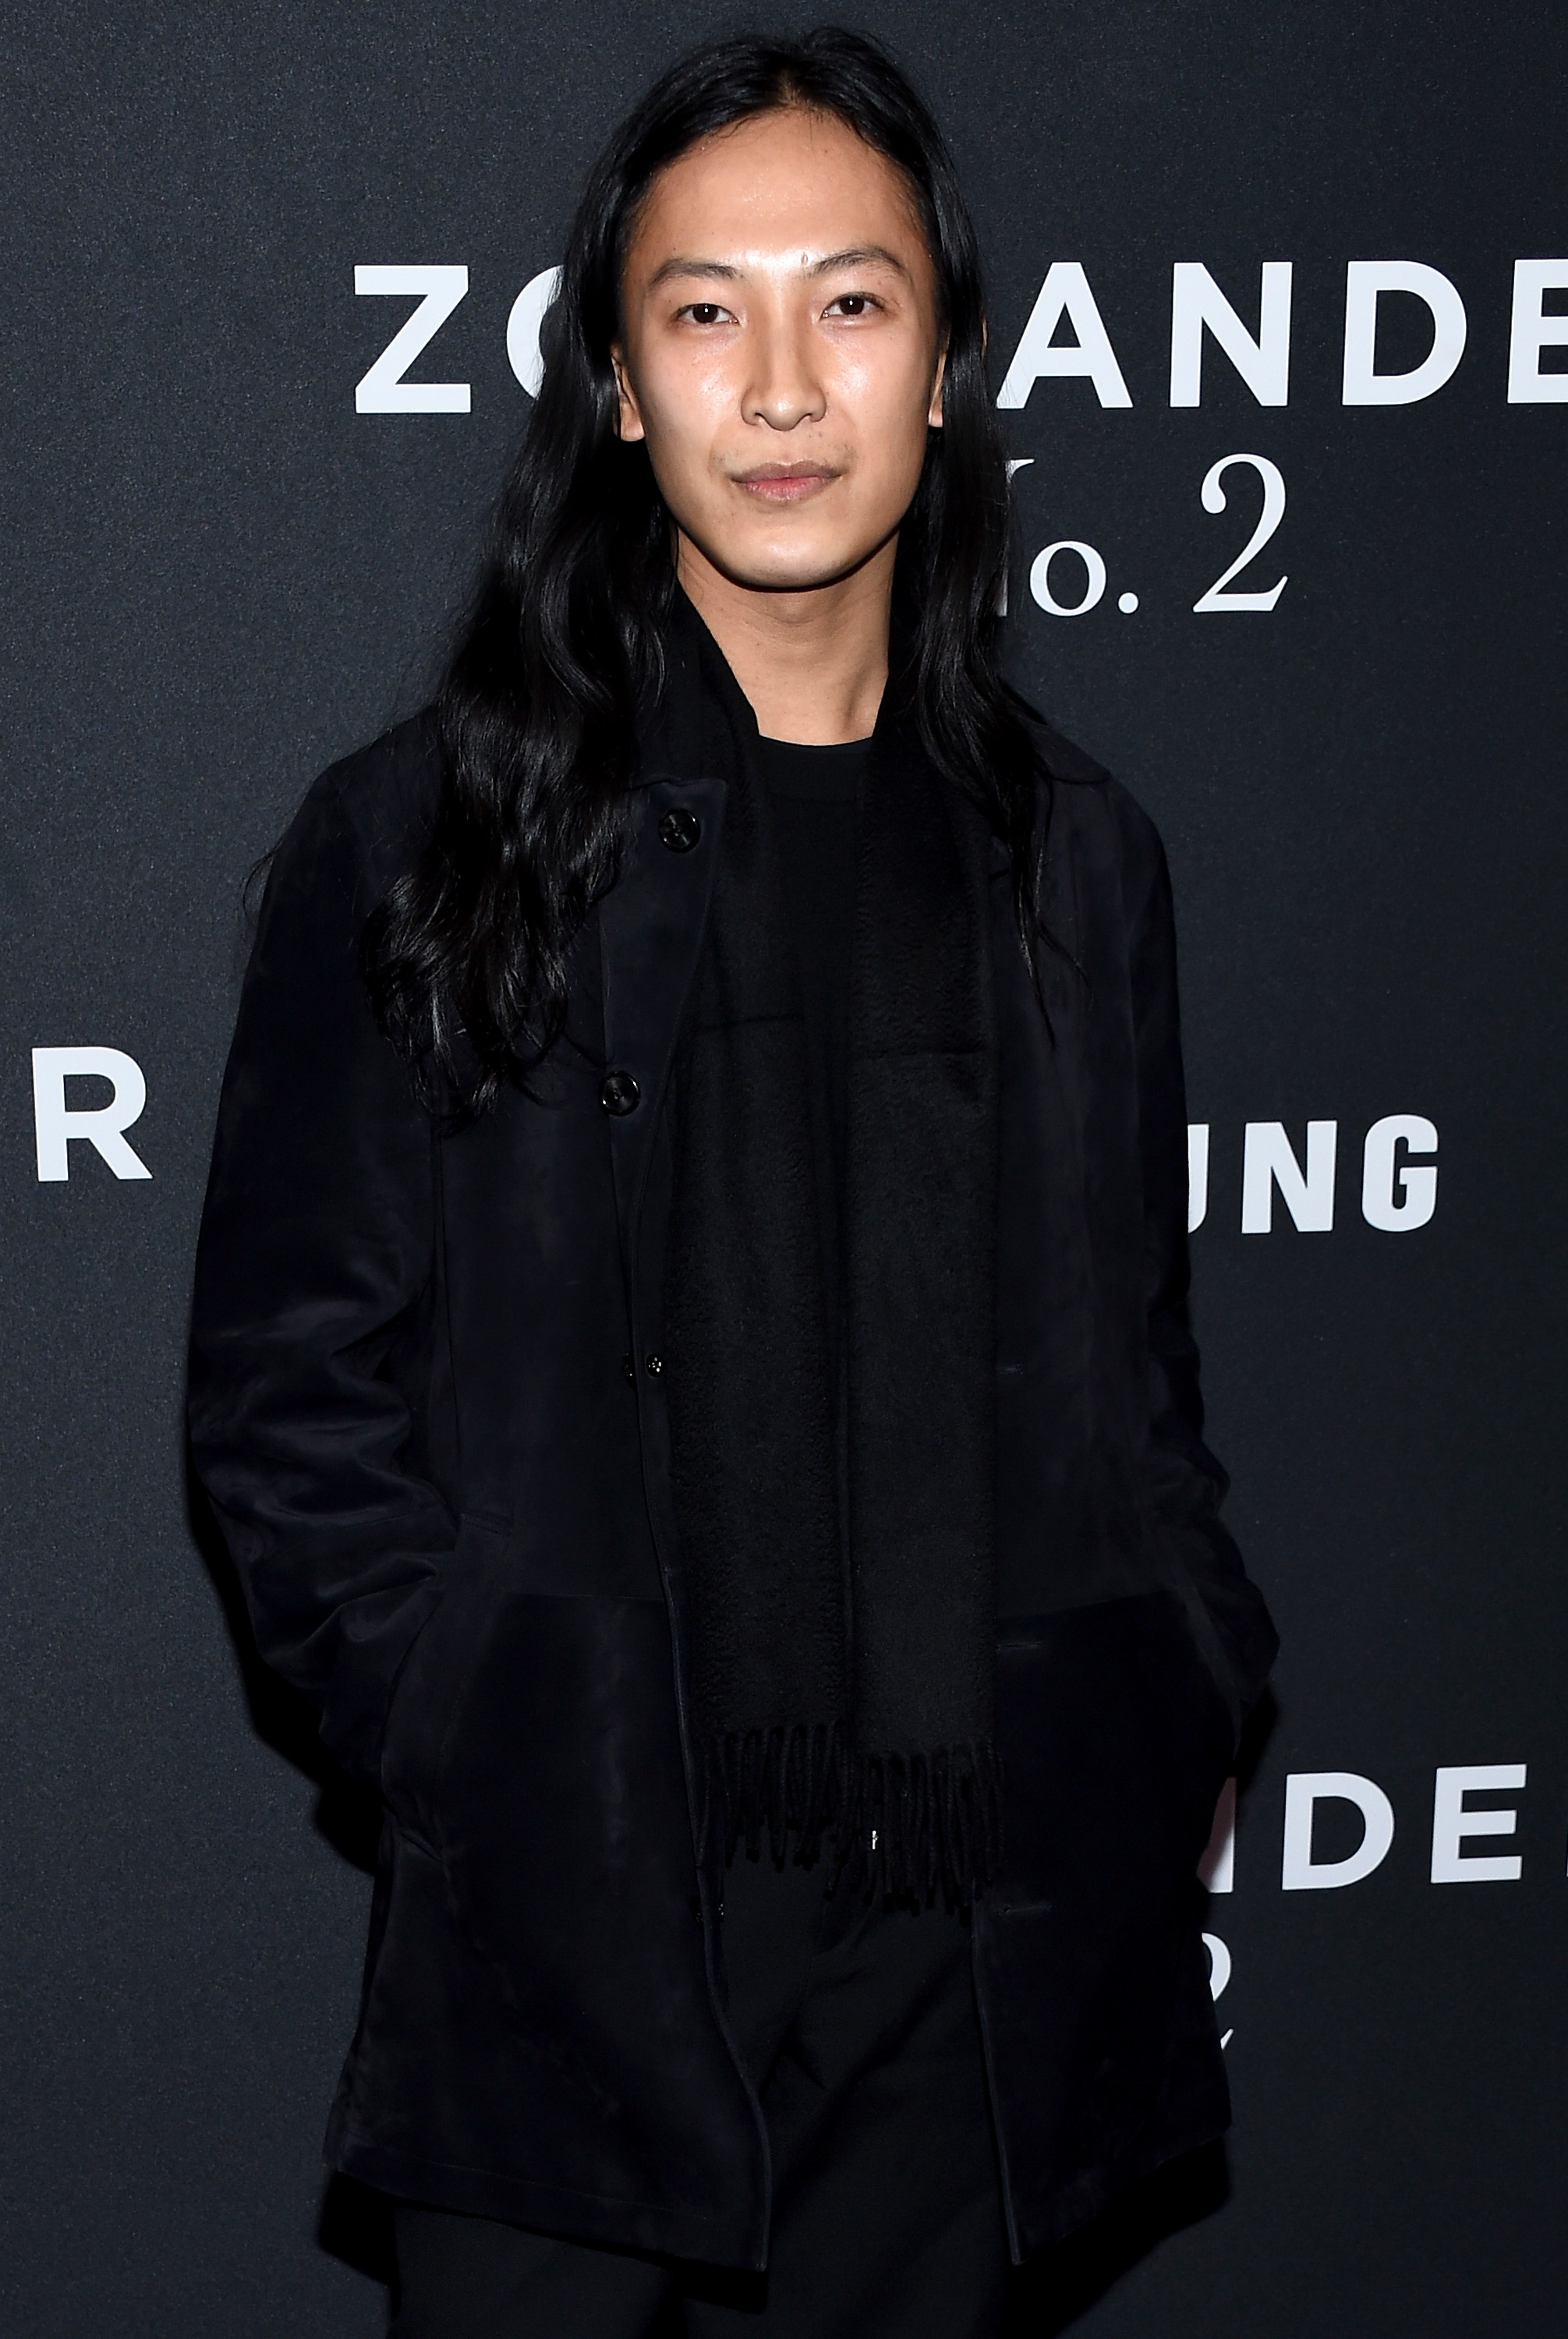 At 15 years old, Alexander Wang went to a summer design program at Central Saint Martins. Wang attended elementary and middle school at the Harker School. [12] He went to boarding school in Pebble Beach, CA at Stevenson School for 9th grade.